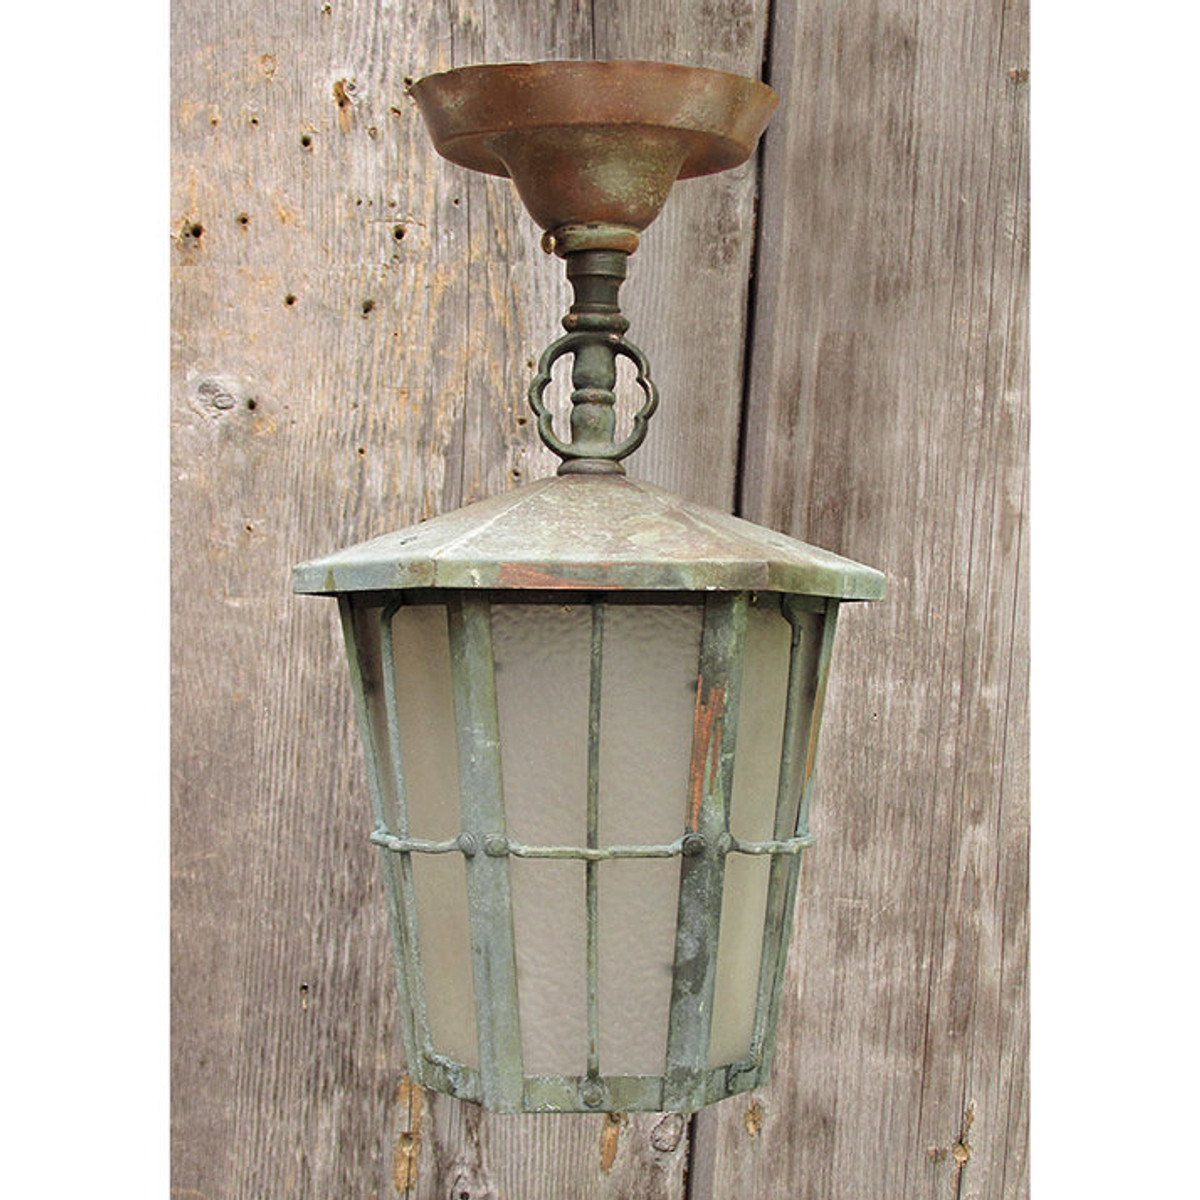 L15141 - Antique Copper & Brass Lantern with Etched Glass Panels